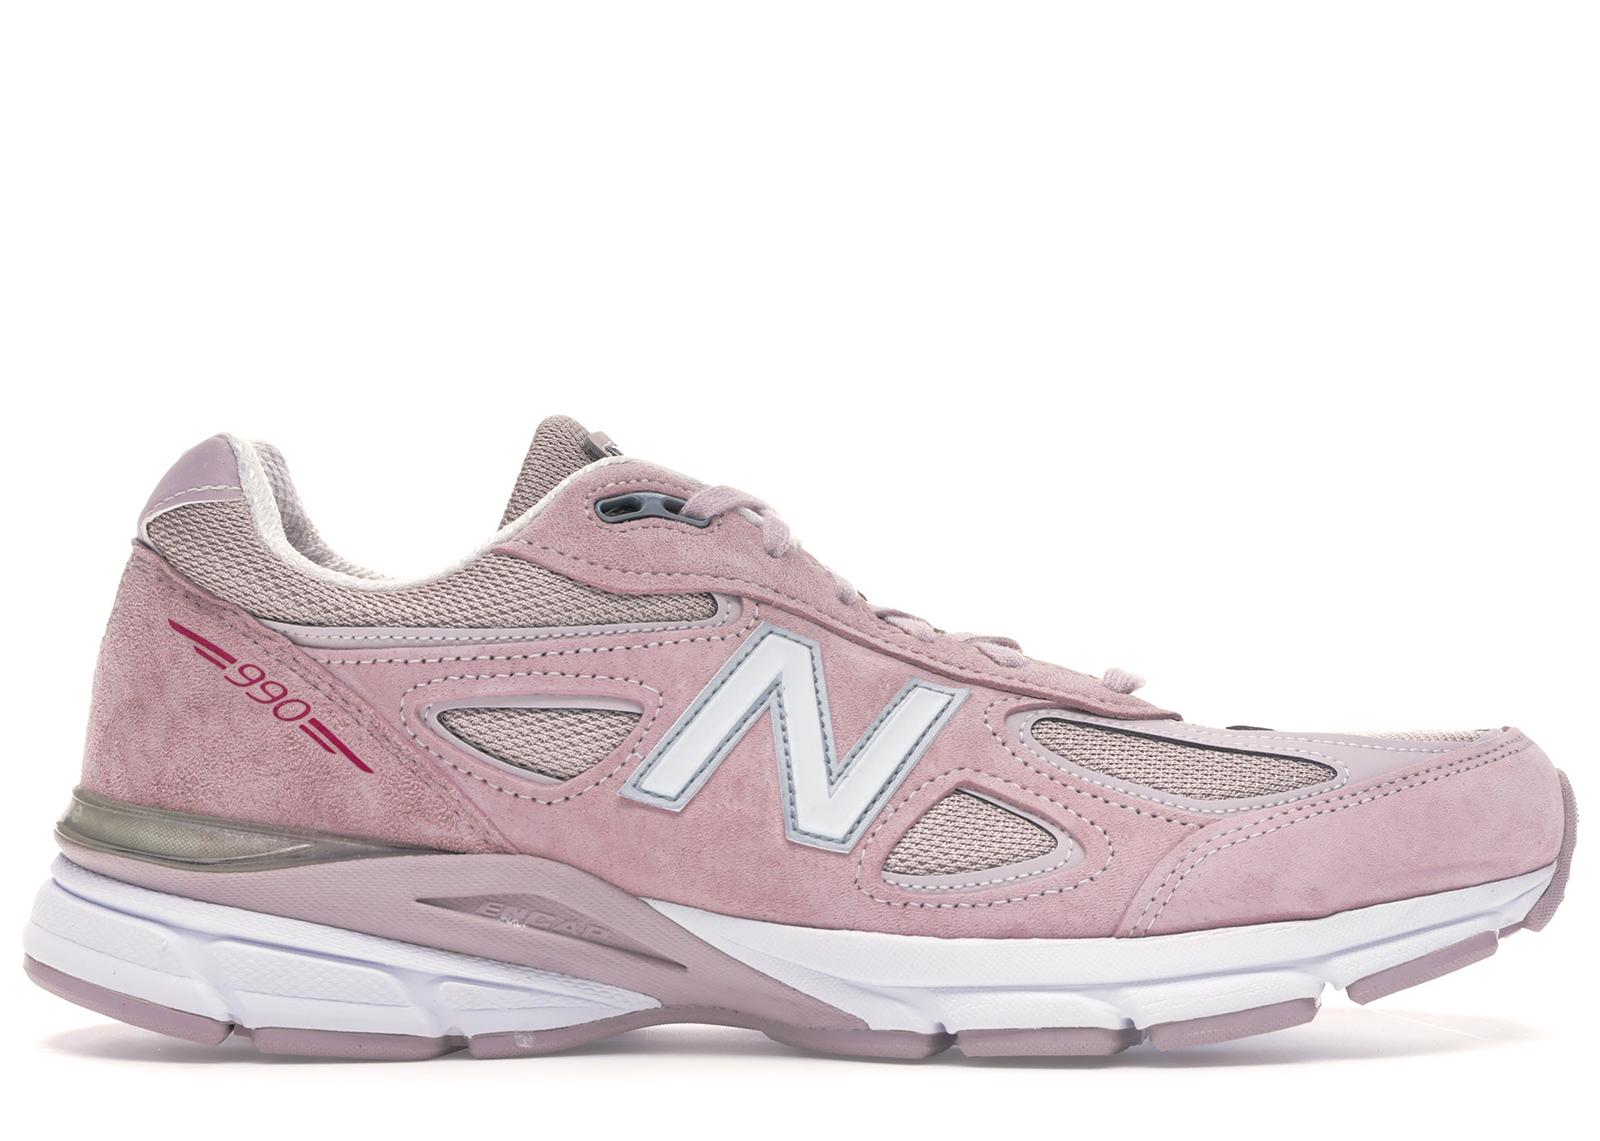 New Balance Made 990 V4 Sneaker in Pink